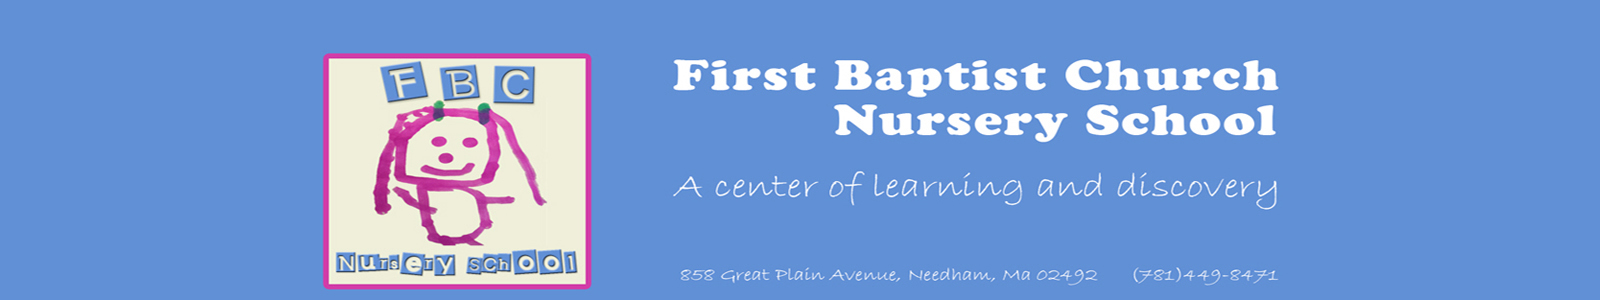 First Baptist Church Nursery School